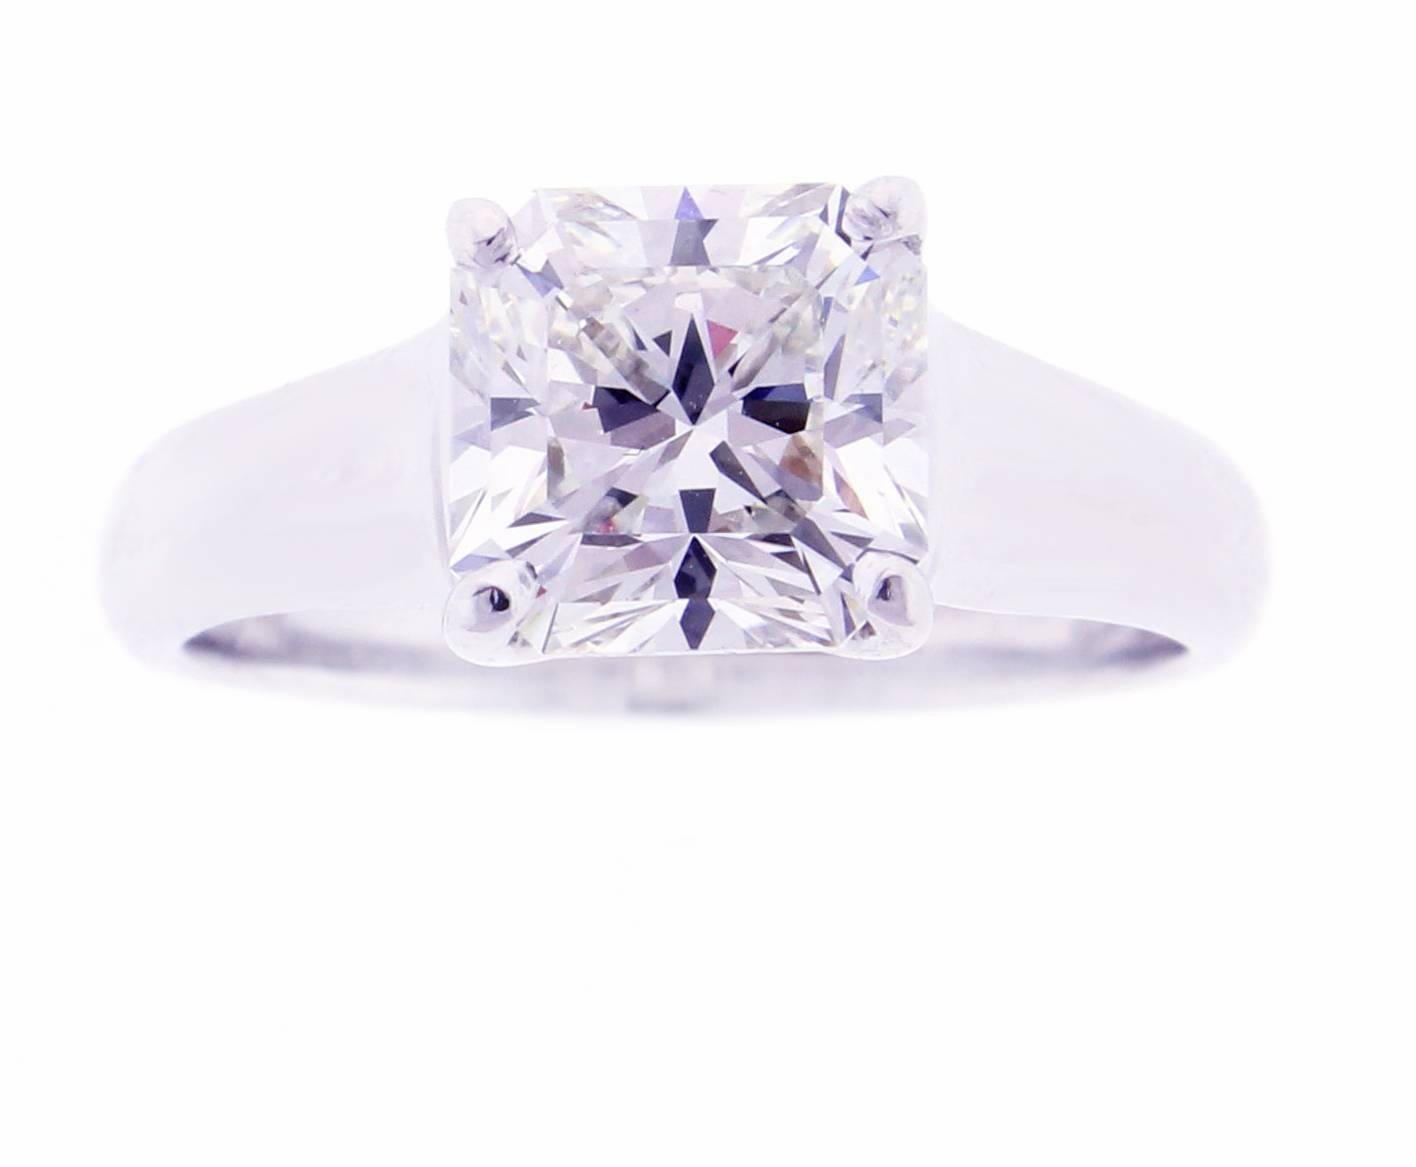 Tiffany and Co Lucida 2 07 Carat Diamond Platinum Ring For Sale at 1stdibs